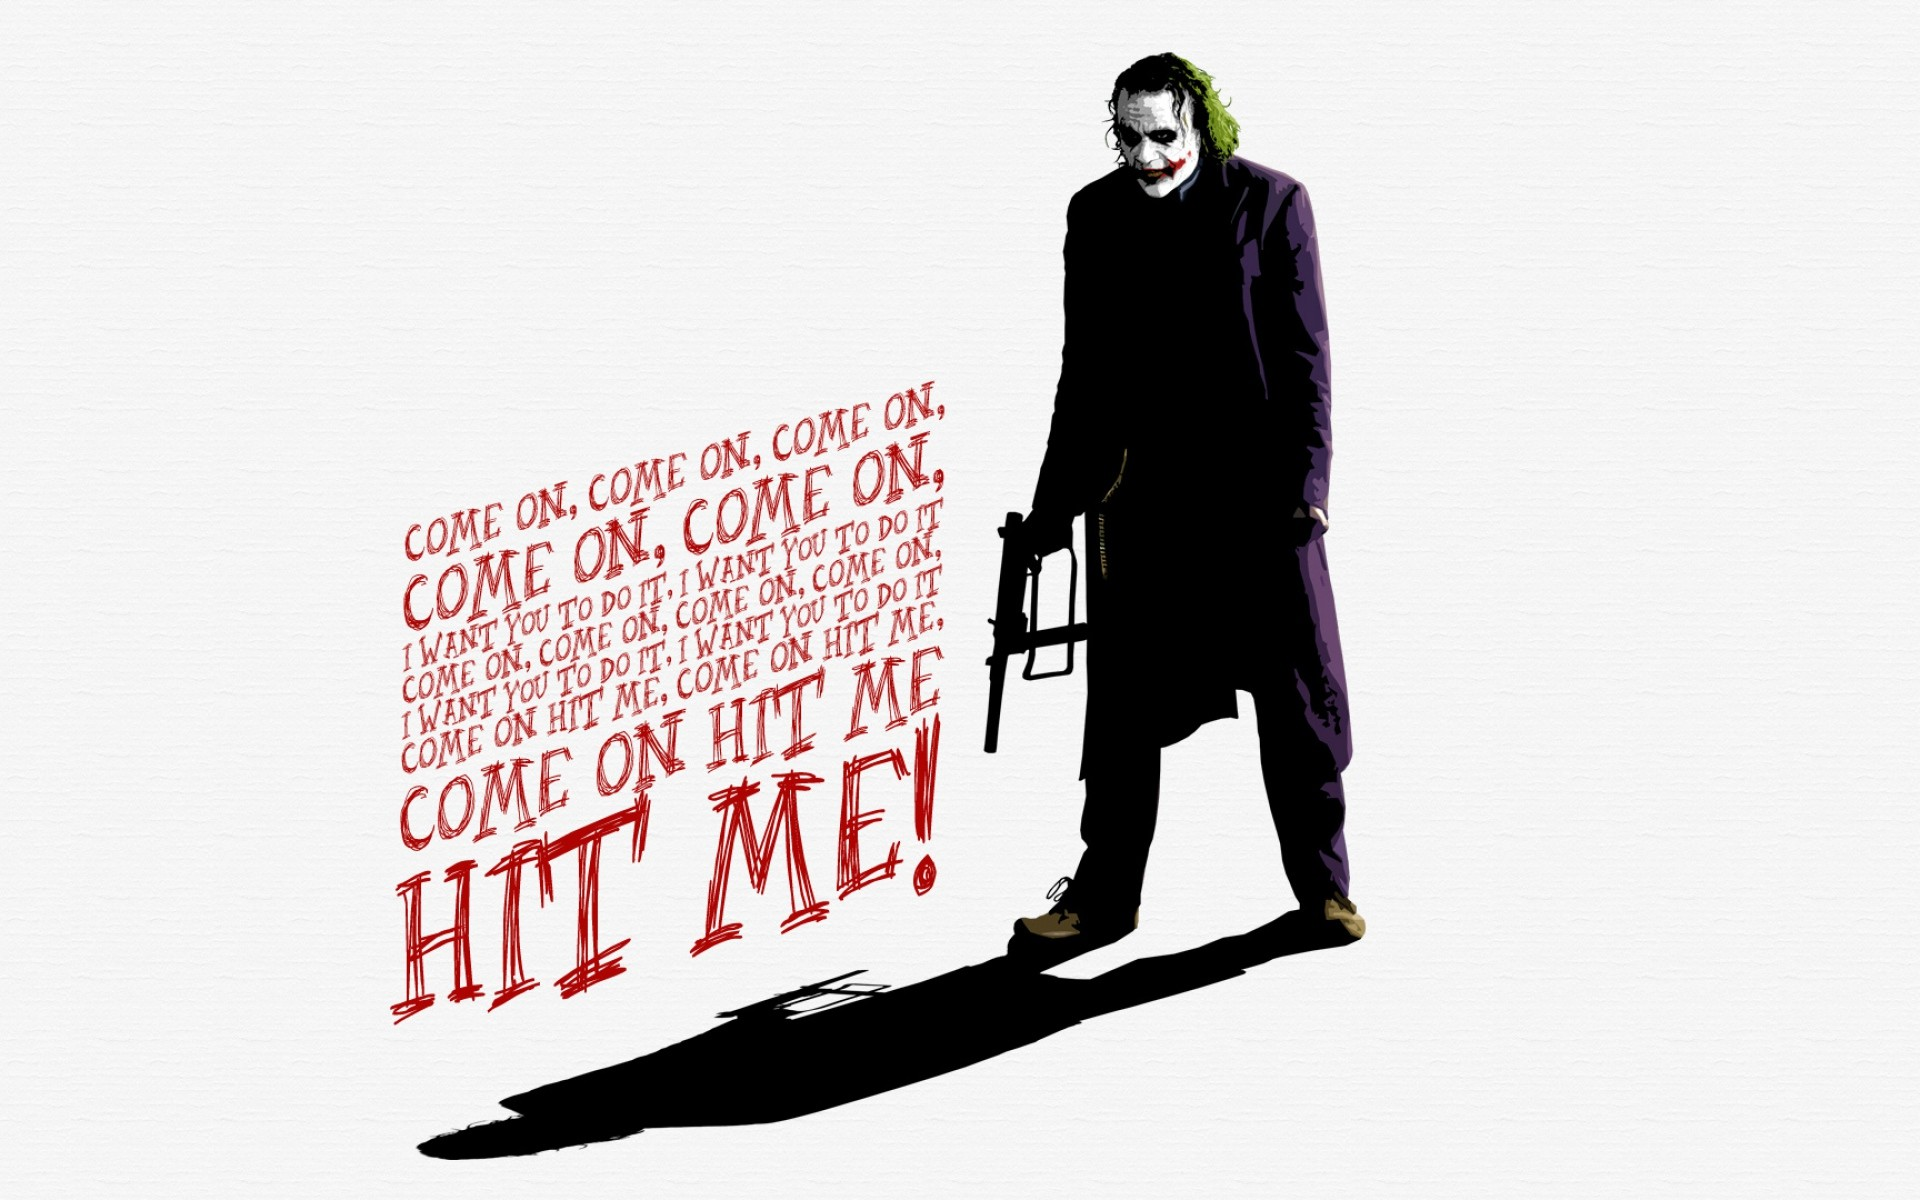 Dark Knight Joker Quotes Wallpaper Hd Joker Quotes Wallpaper Hd